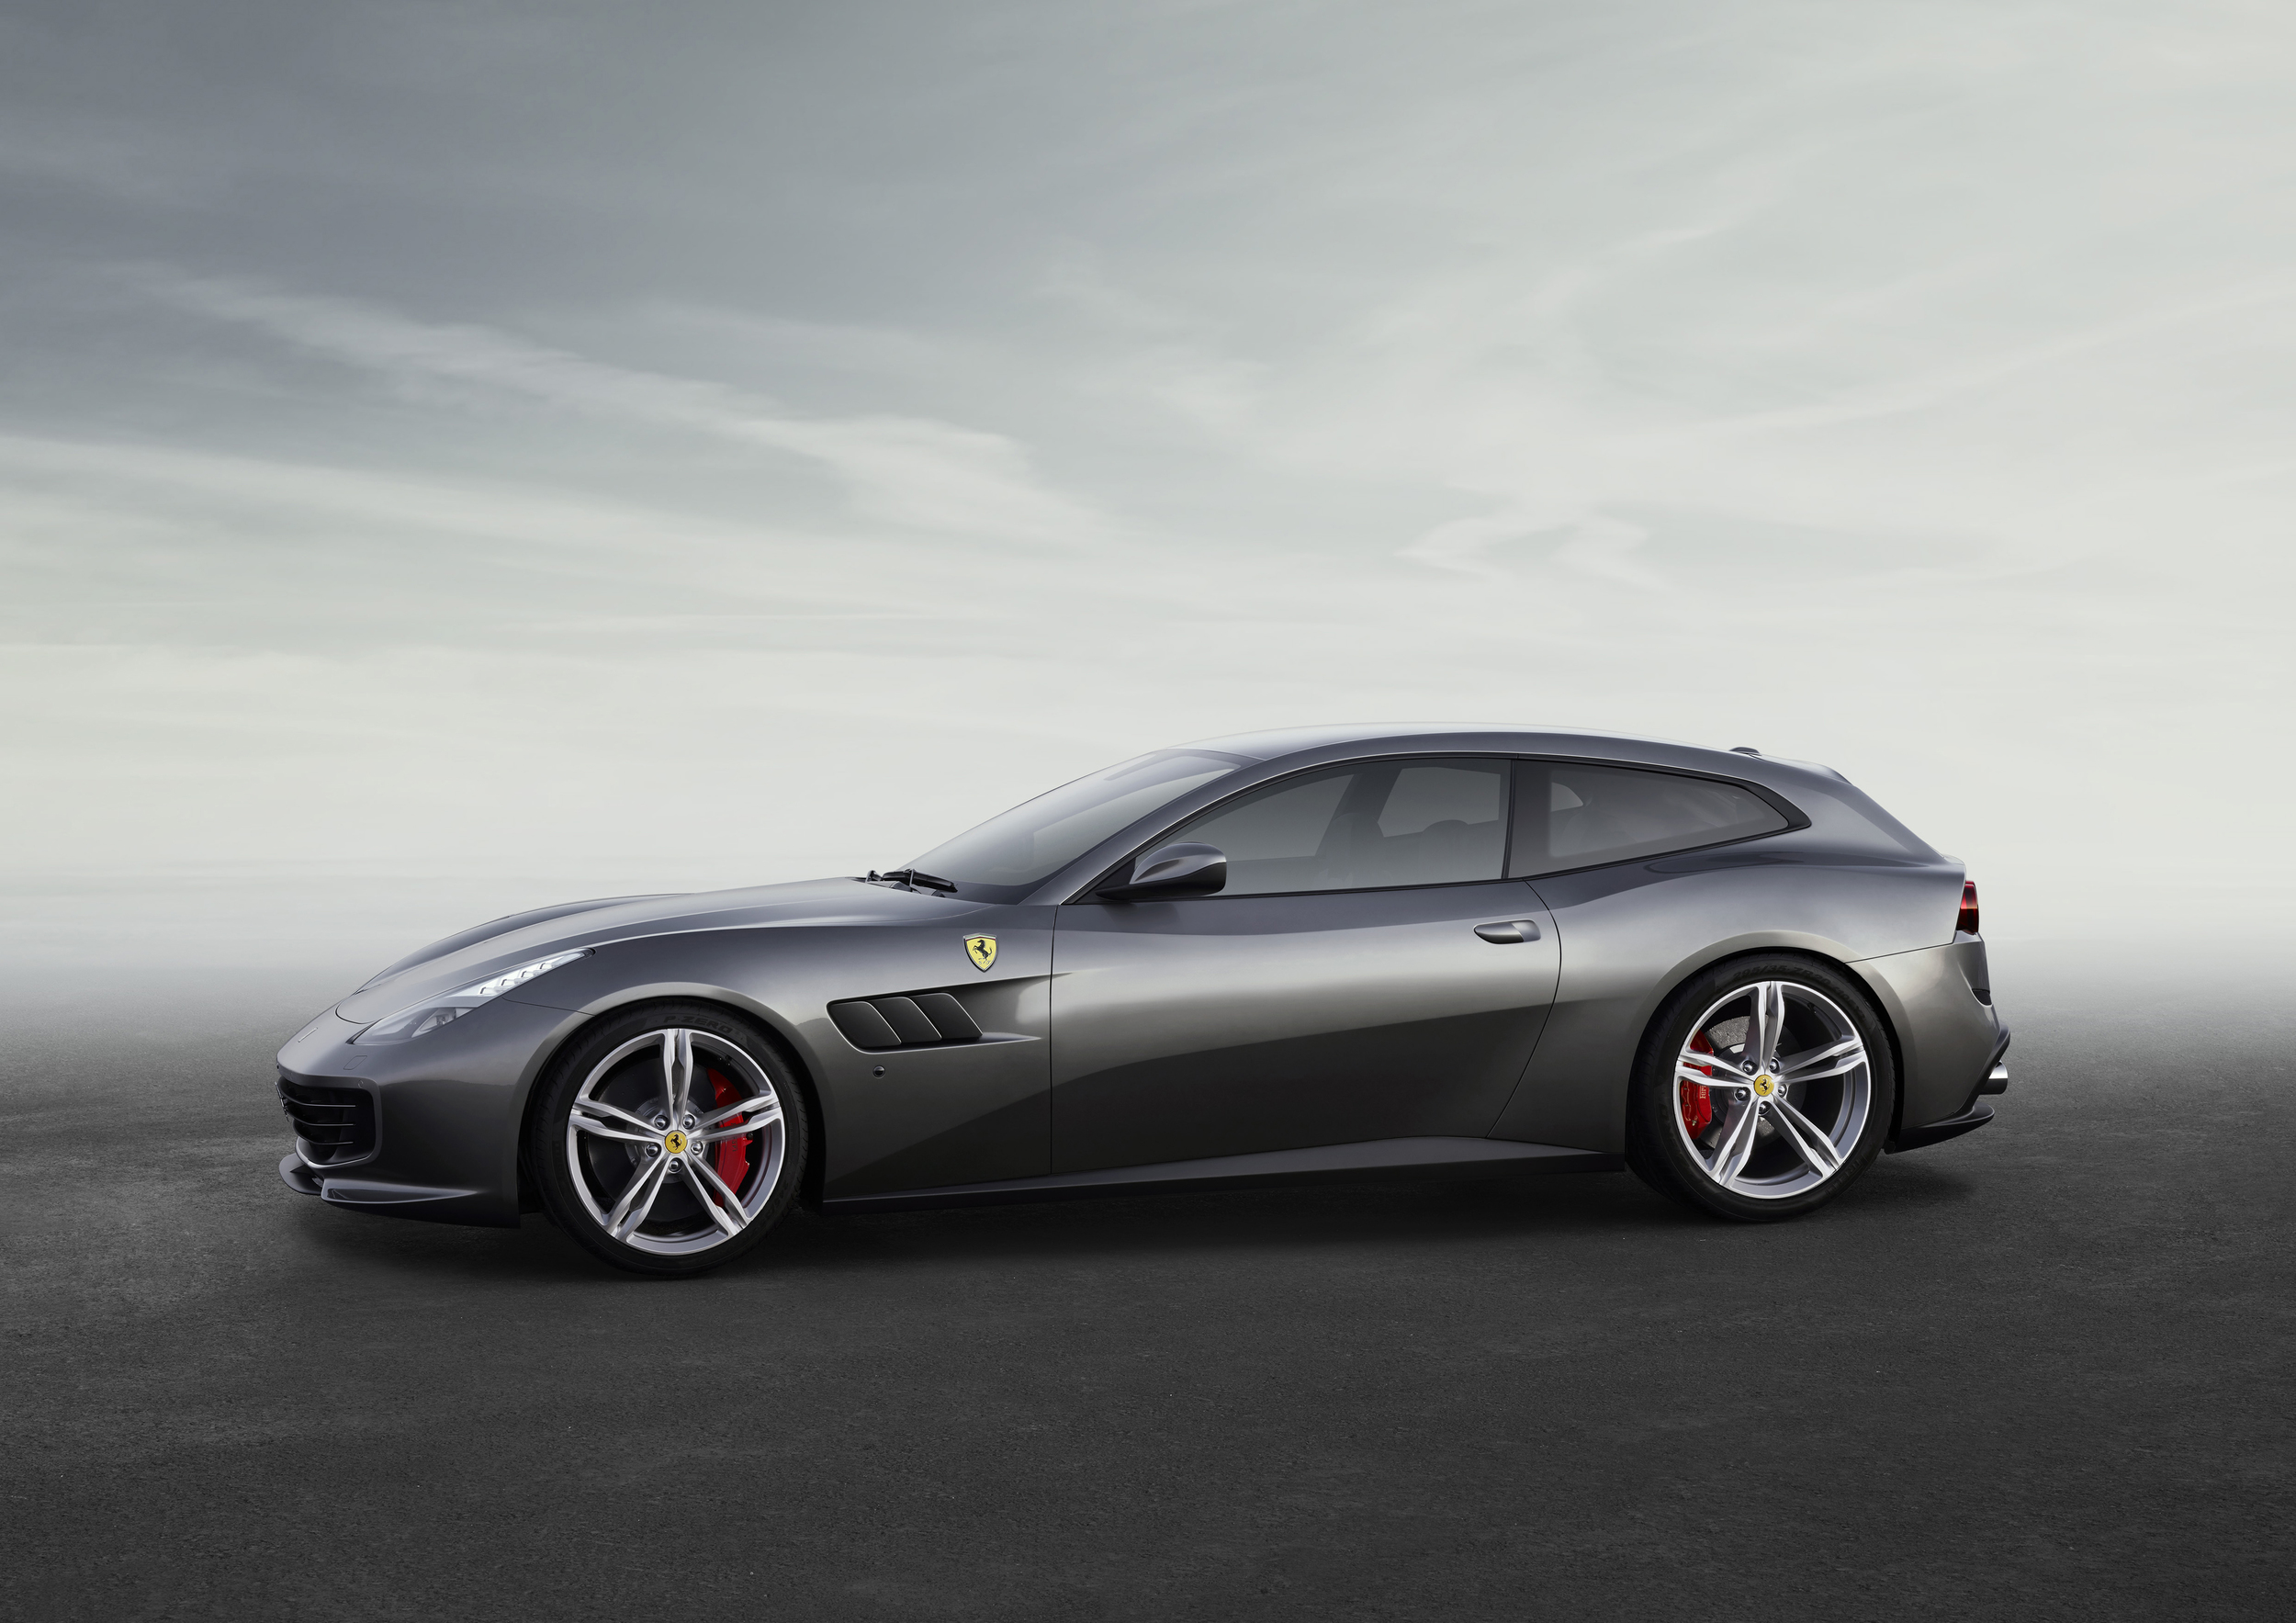 Ferrari May be Building the SUV They Said They Wouldn't